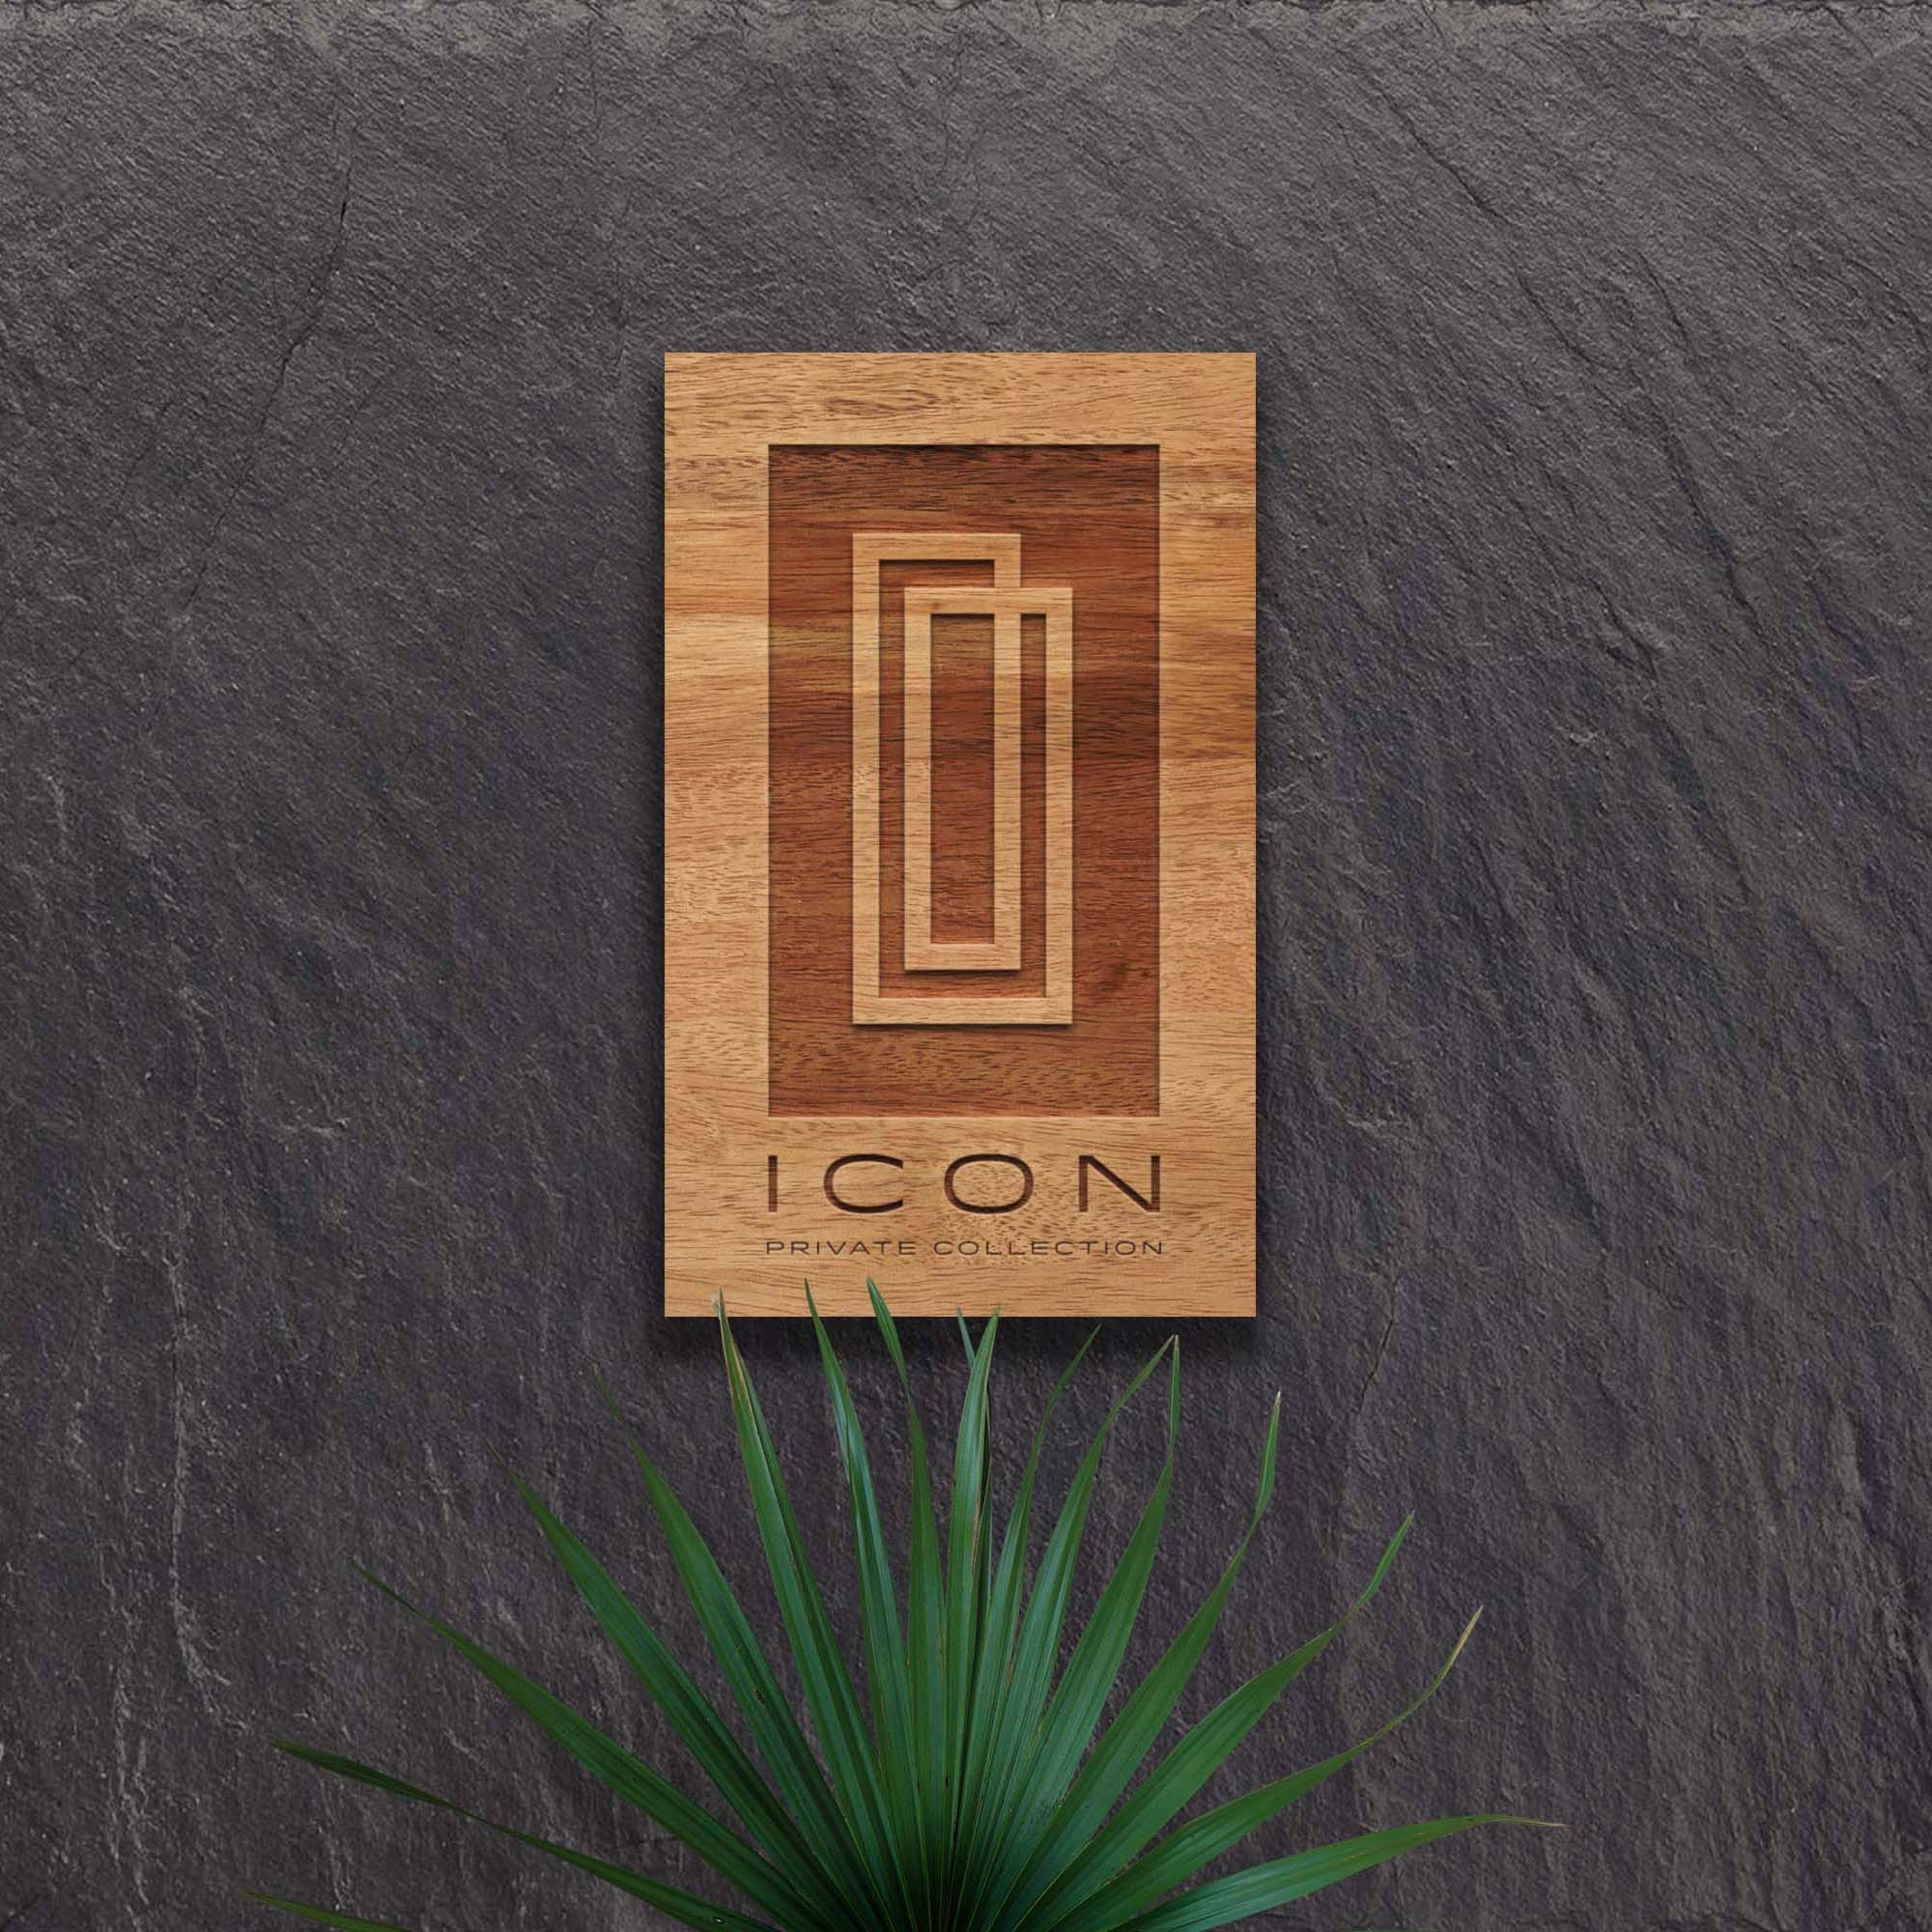 ICON private collection-logo hotel plaque